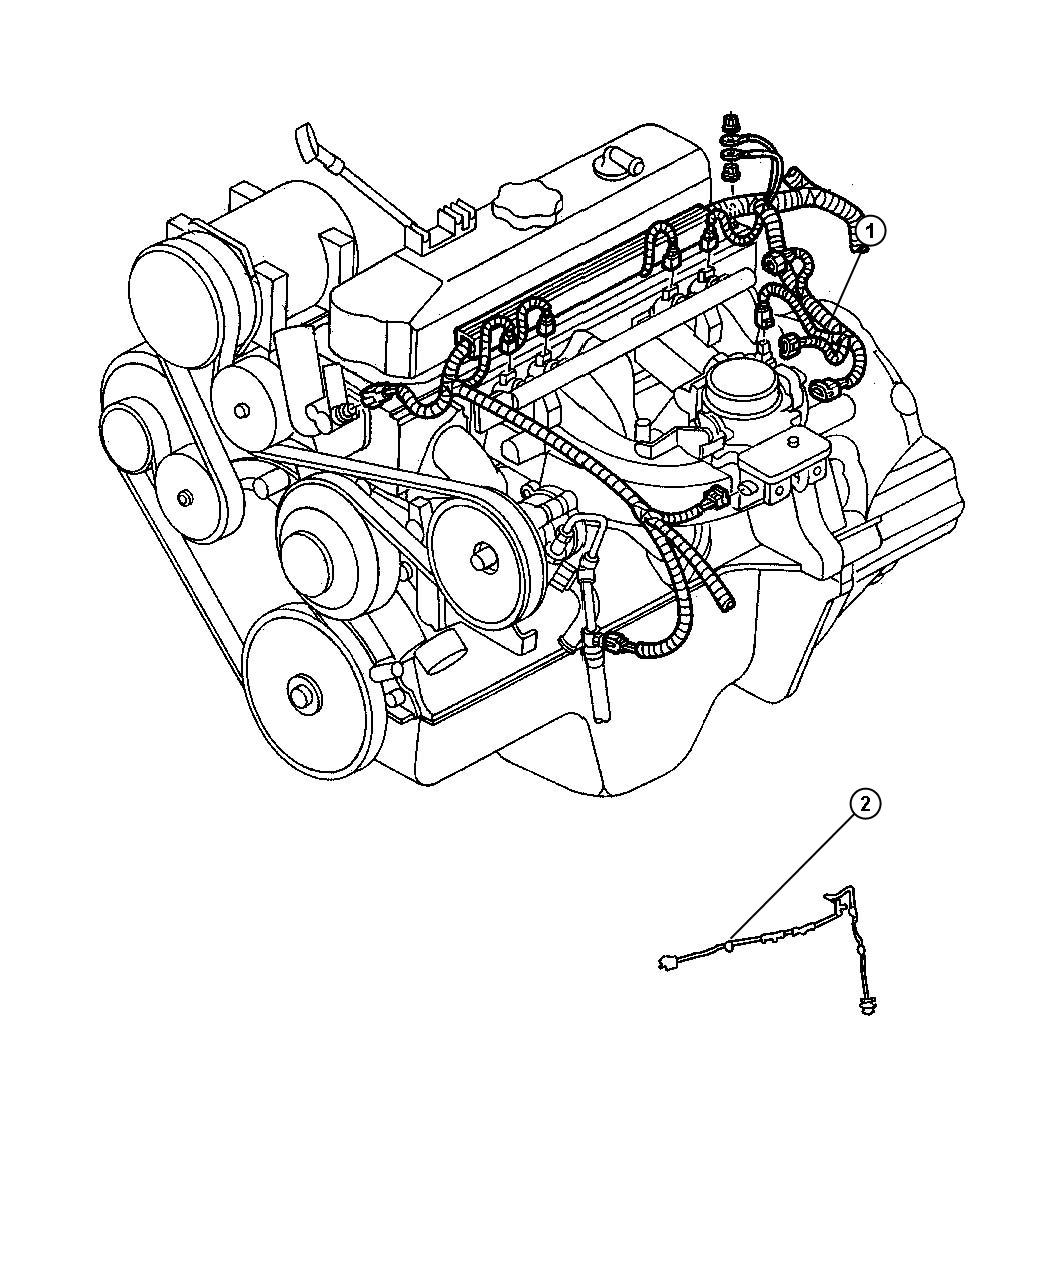 Dodge Durango Wiring. Engine. Federal and export, u.s. 50